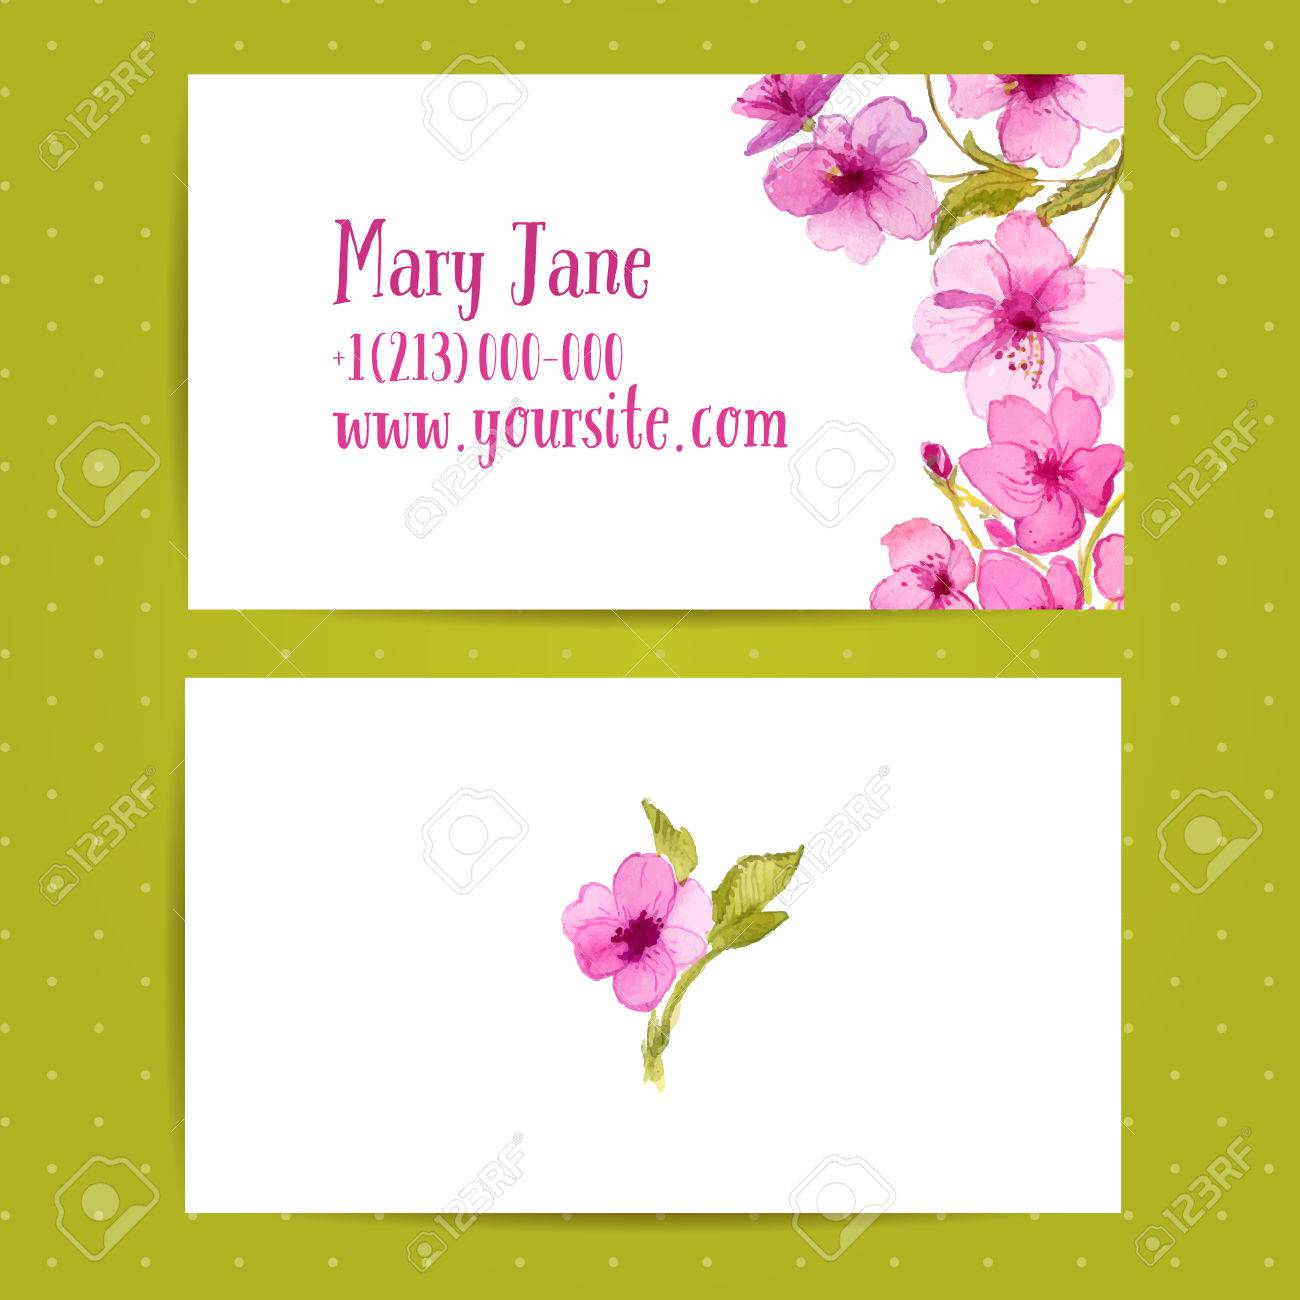 Business Card Template With Watercolor Flowers Of Cherry Blossom ...